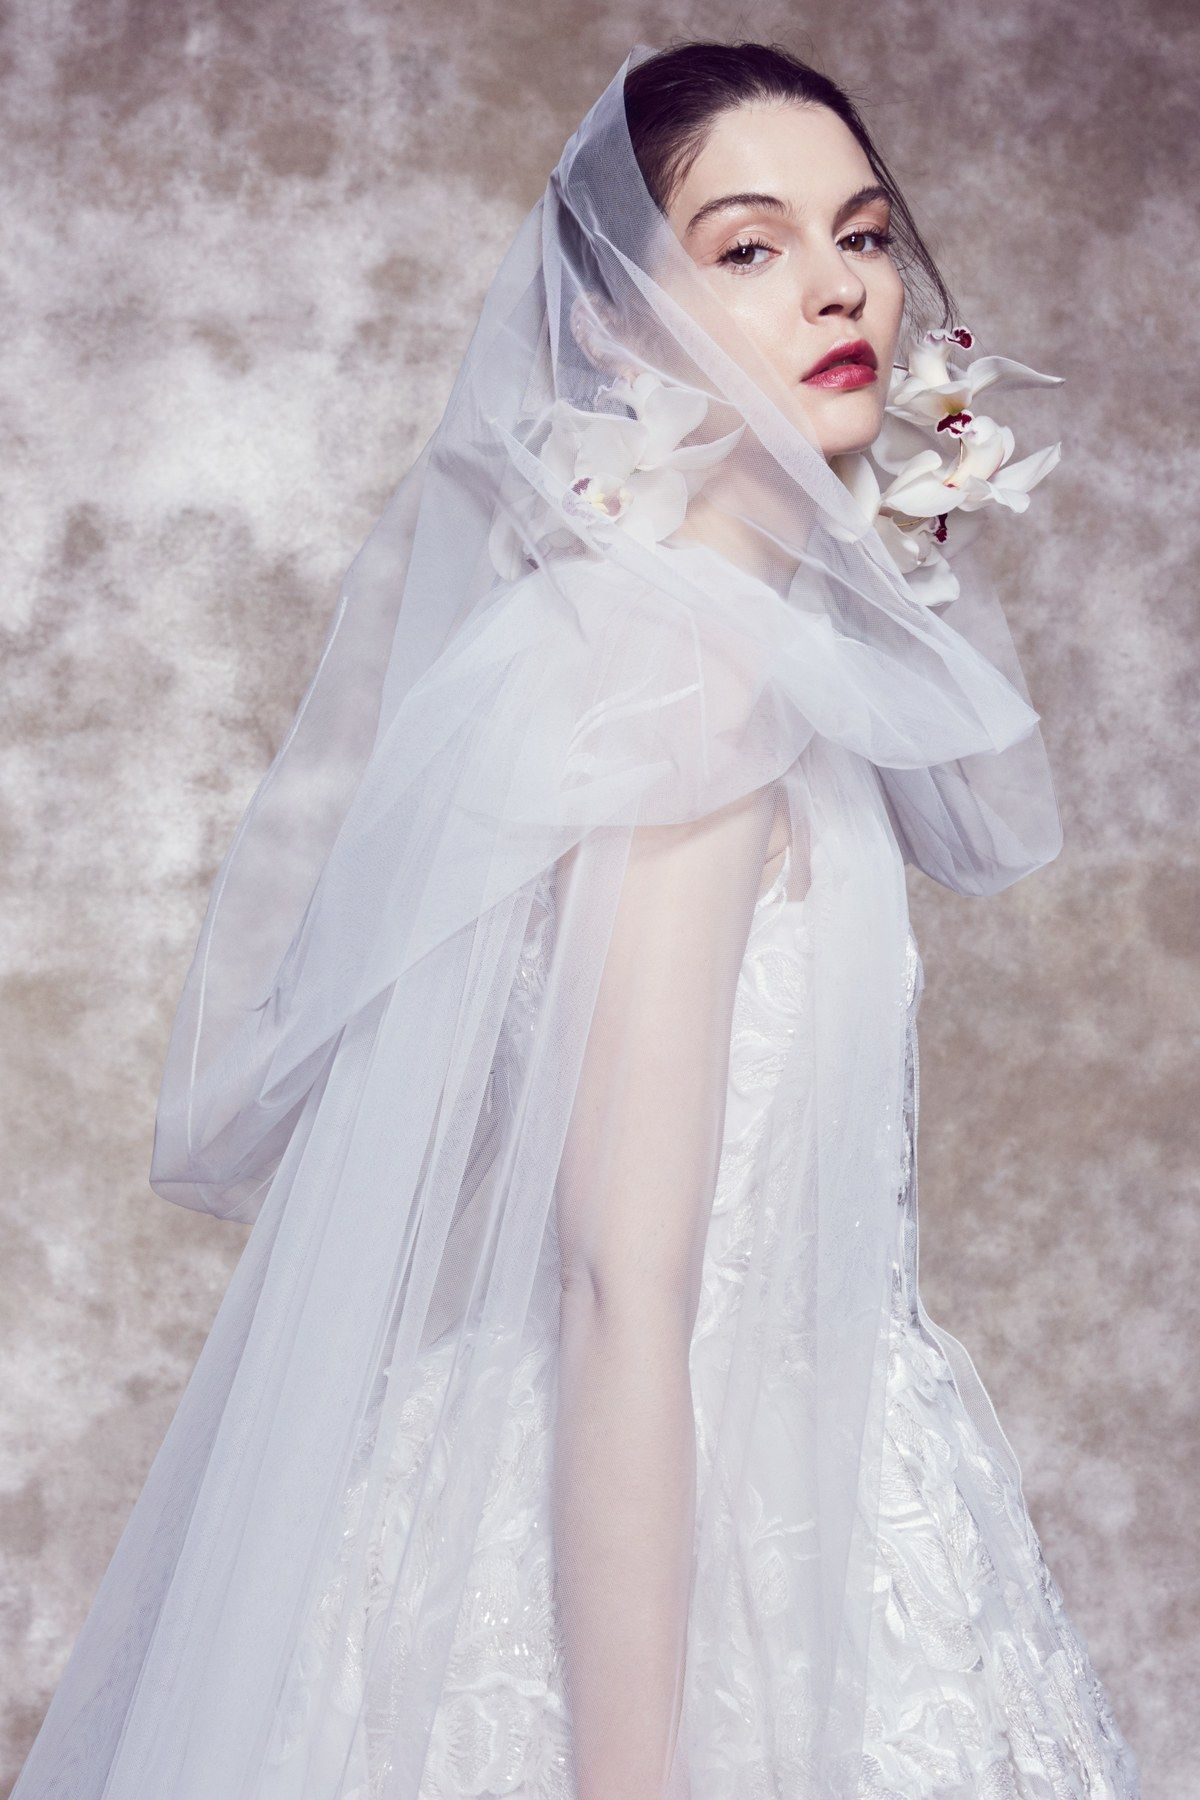 Marchesa Bridal Spring 2020 collection, runway looks, beauty, models, and reviews.